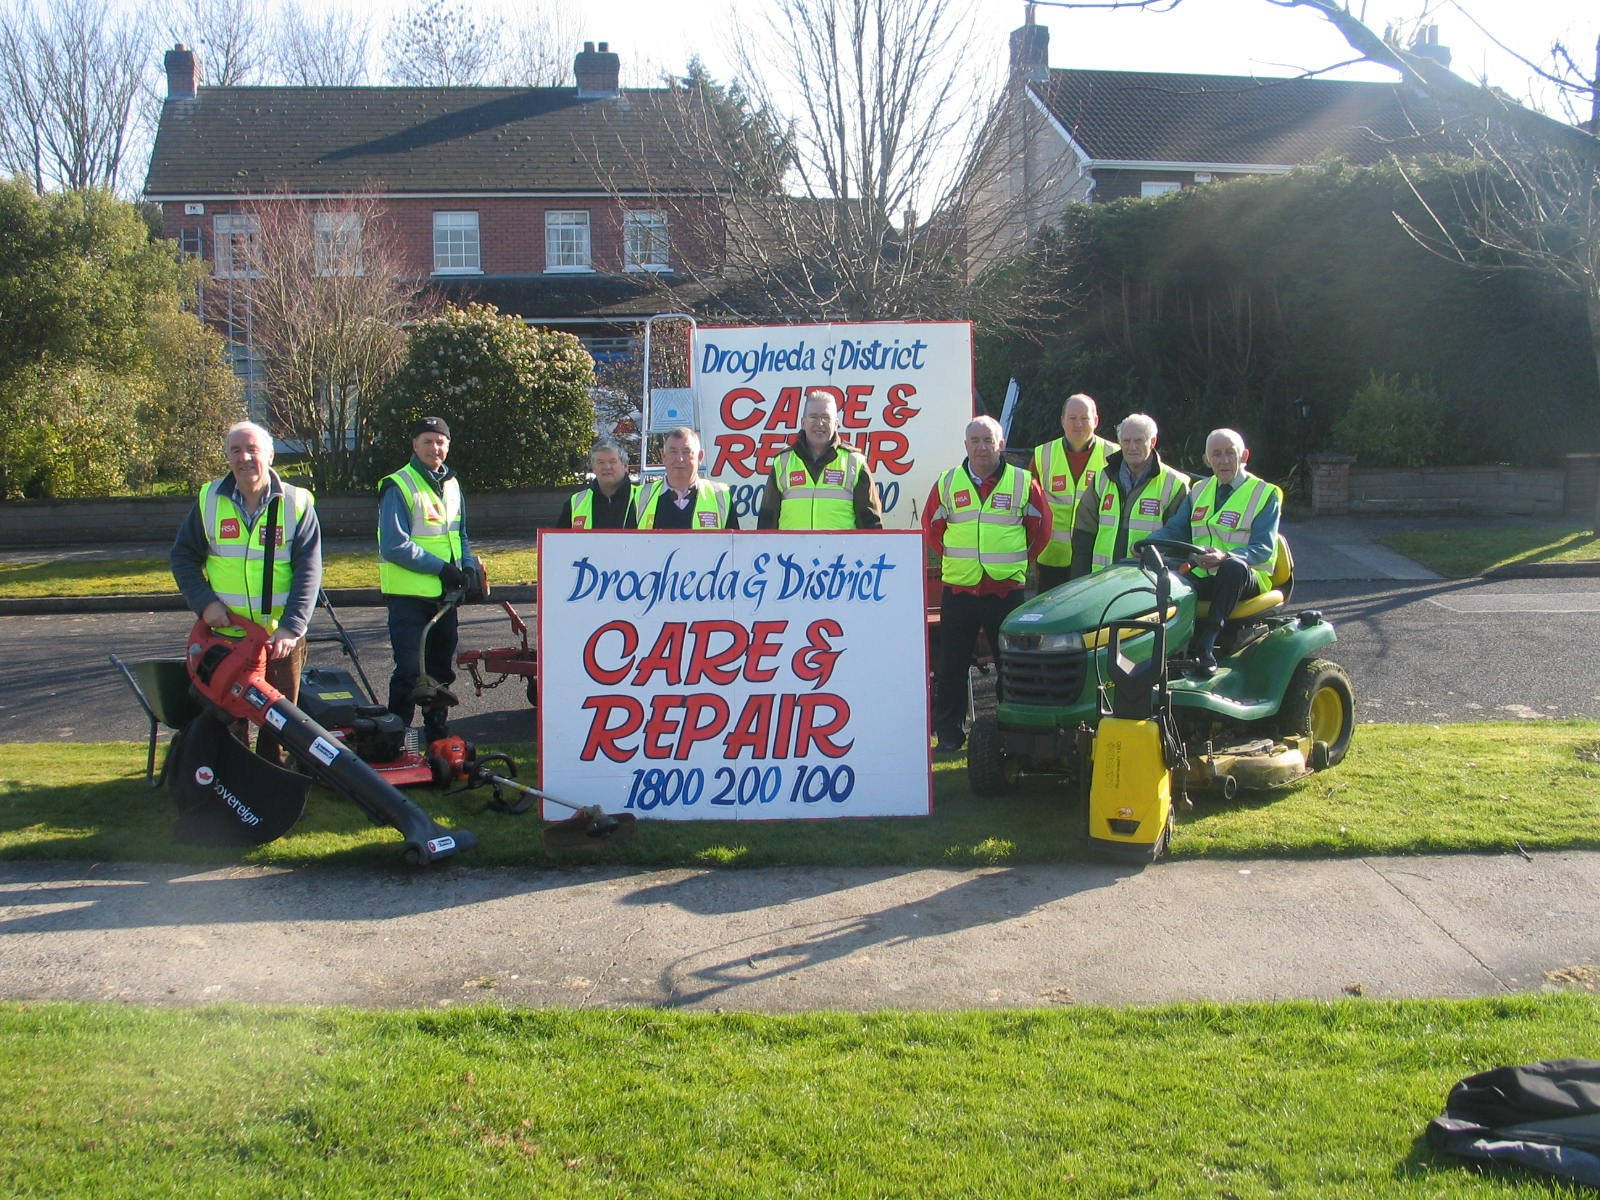 Care and Repair with banner